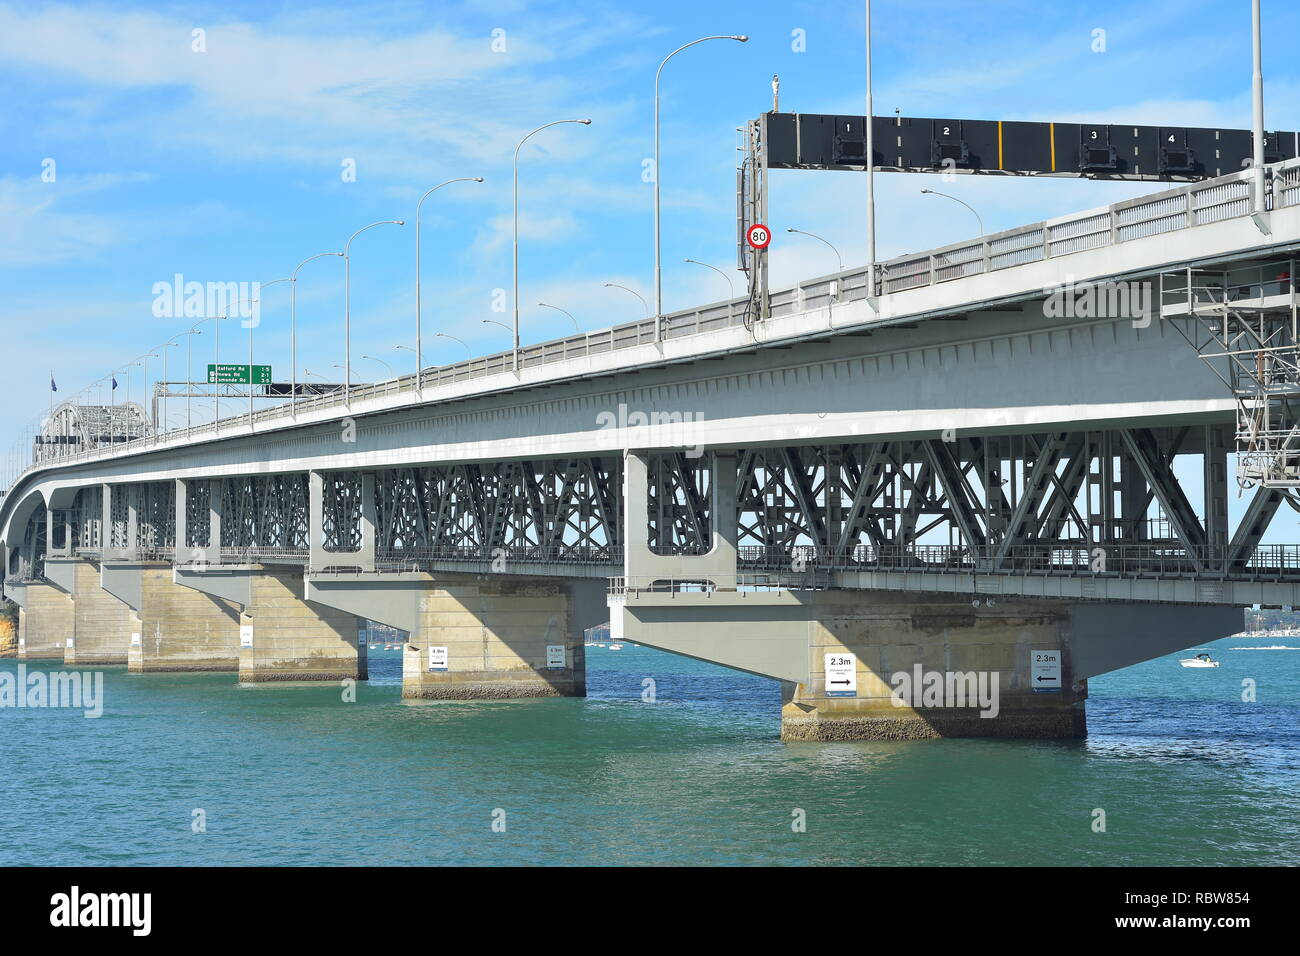 Concrete pylons and steel structure of Auckland Harbour Bridge over Waitemata Harbour from Curran Street on sunny day. - Stock Image